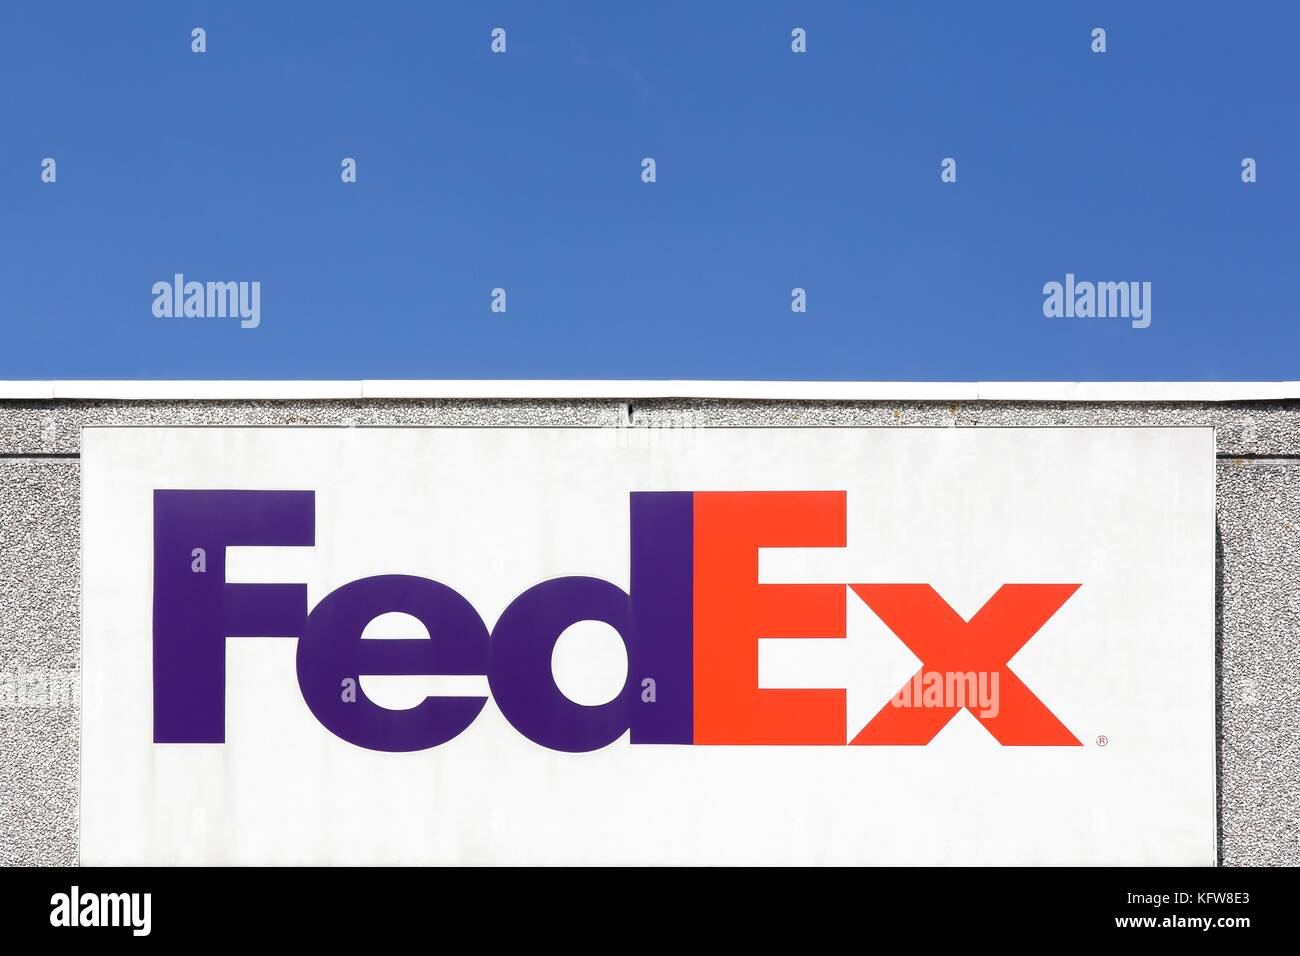 fedex corporation View fedex corporation fdx investment & stock information get the latest fedex corporation fdx detailed stock quotes, stock data, real-time ecn, charts, stats and more.